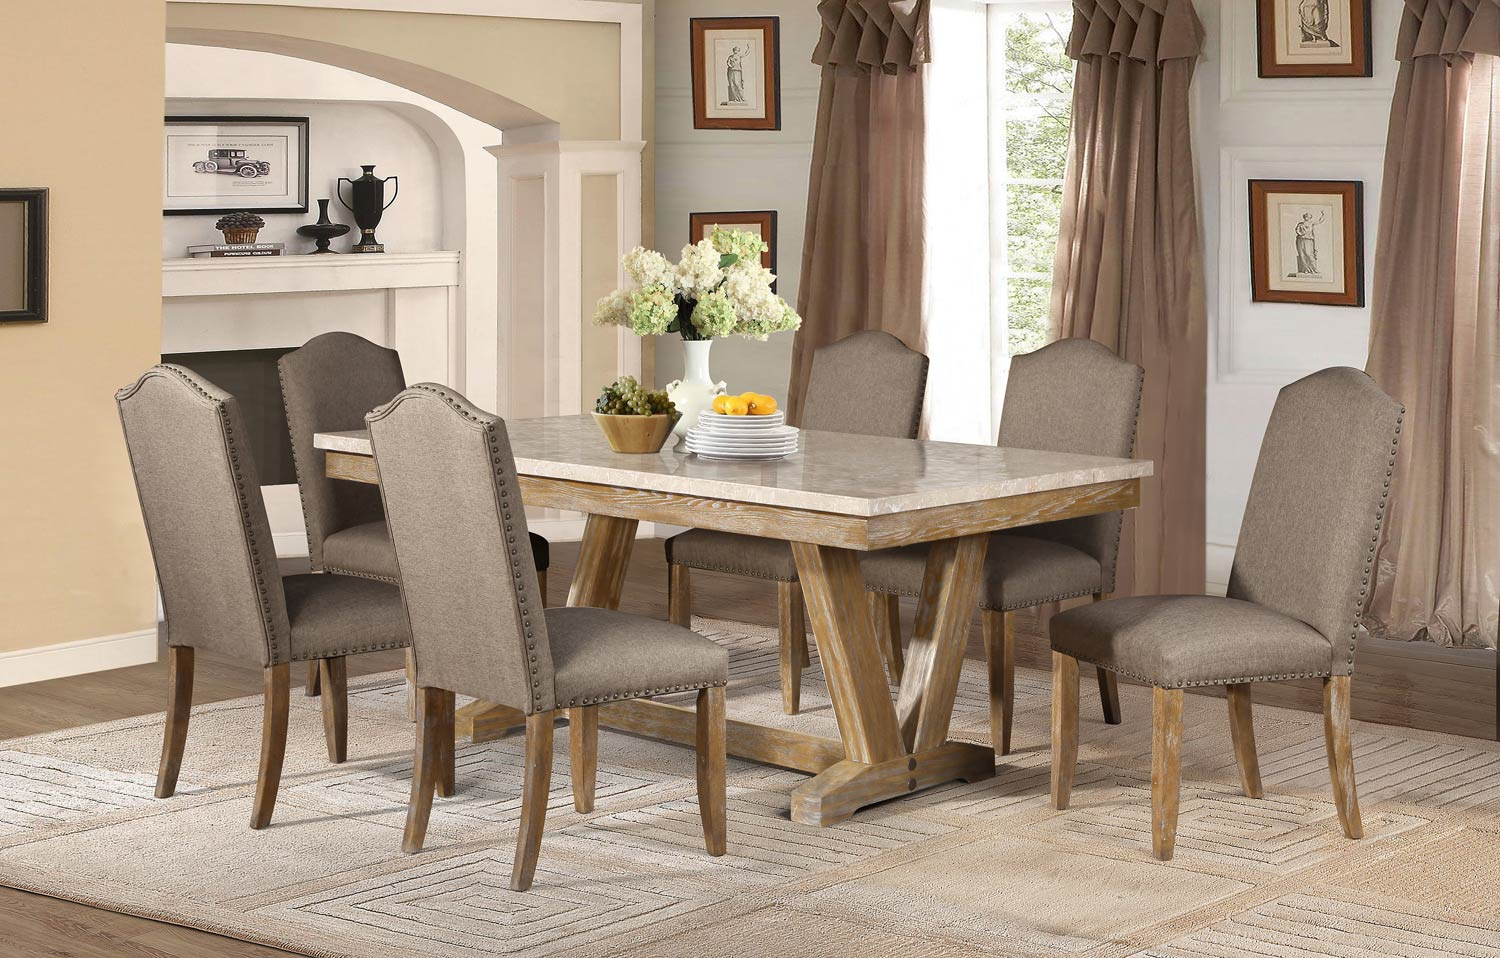 Homelegance Jemez Dining Set - Faux Marble Top - Weathered Wood